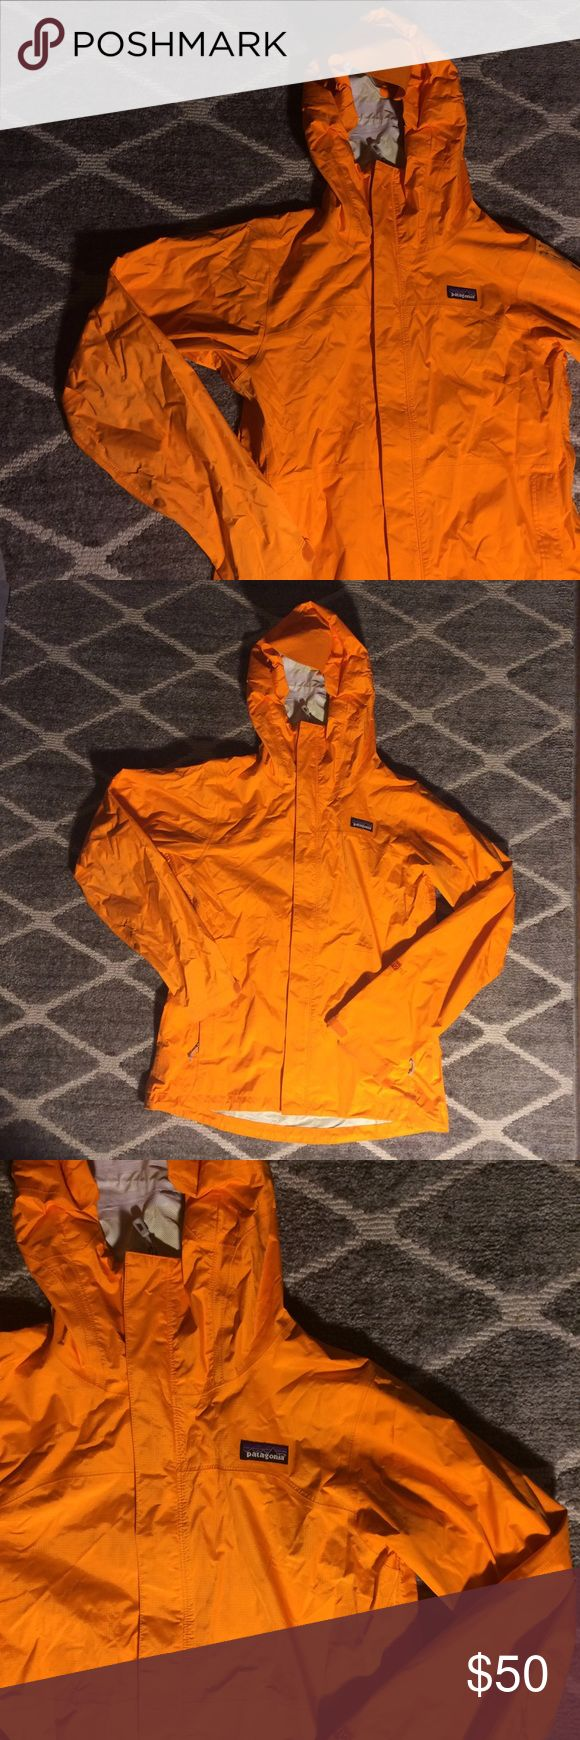 Orange Patagonia Rain Jacket Bright orange Patagonia rain jacket. Great rain jacket to brighten up a rainy day! Get this bold closet essential from me for cheap! :) Patagonia Jackets & Coats